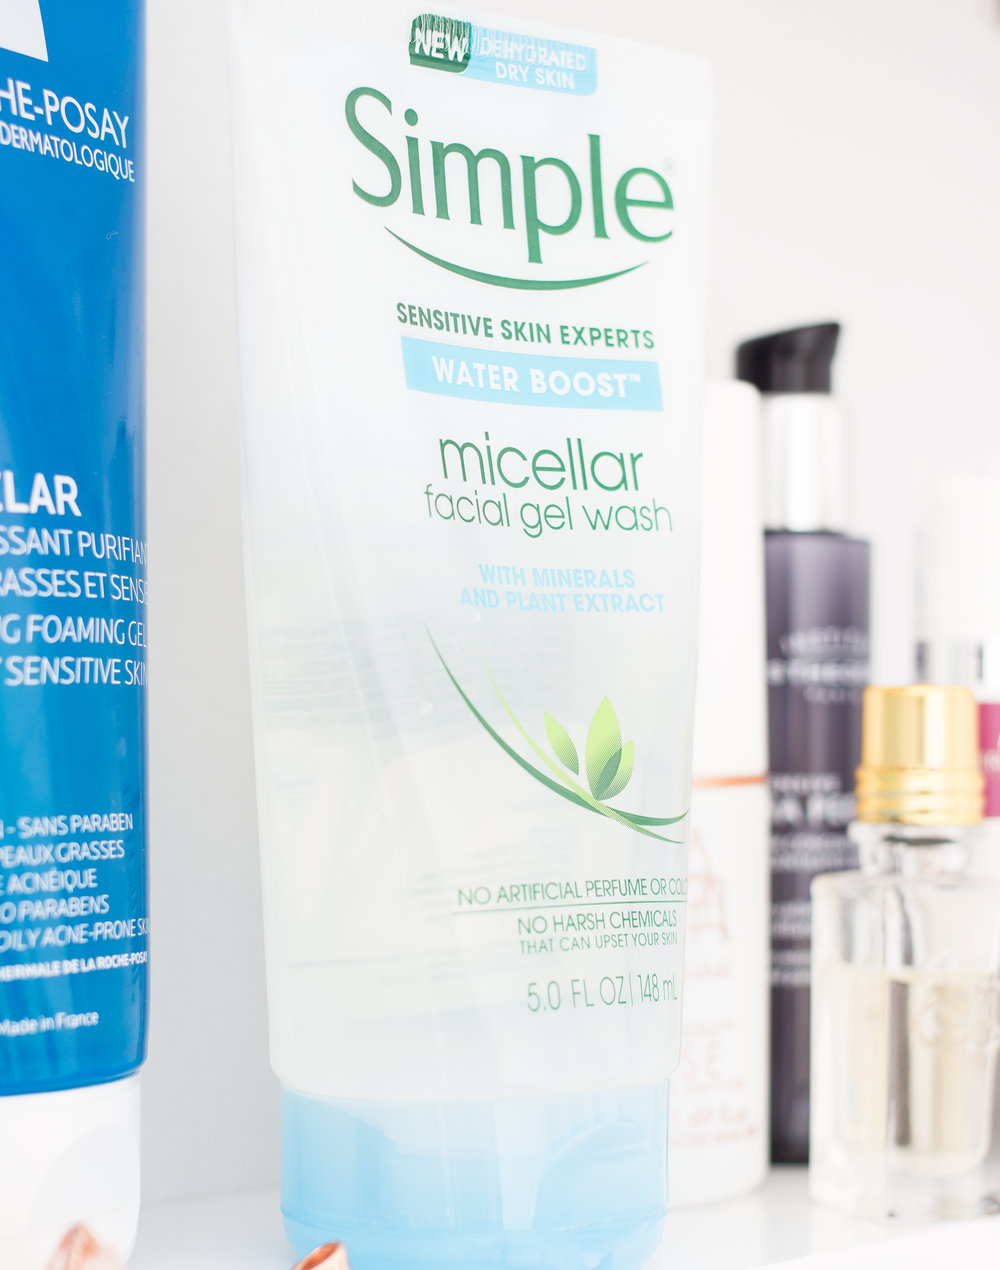 SIMPLE MICELLAR FACIAL GEL WASH* - I've been using the micellar cleansing water from this new line from Simple and absolutely loving it so I was hoping that the face wash would deliver equally good results. Don't let the world gel scare you either as this isn't drying in the slightest and it's actually pretty hydrating like the name suggests. It doesn't do anything fancy, it just simply cleanses the skin and removes any remnants of makeup so I really like to use this in an AM to get everything off my face ready for makeup. It lathers up enough to feel like it's working but it doesn't foam up and subsequently feel tight or drying. And the best thing is that you can get this around your eye area and it doesn't feel like it's going to burn them out of your skull, which you know is always a plus.